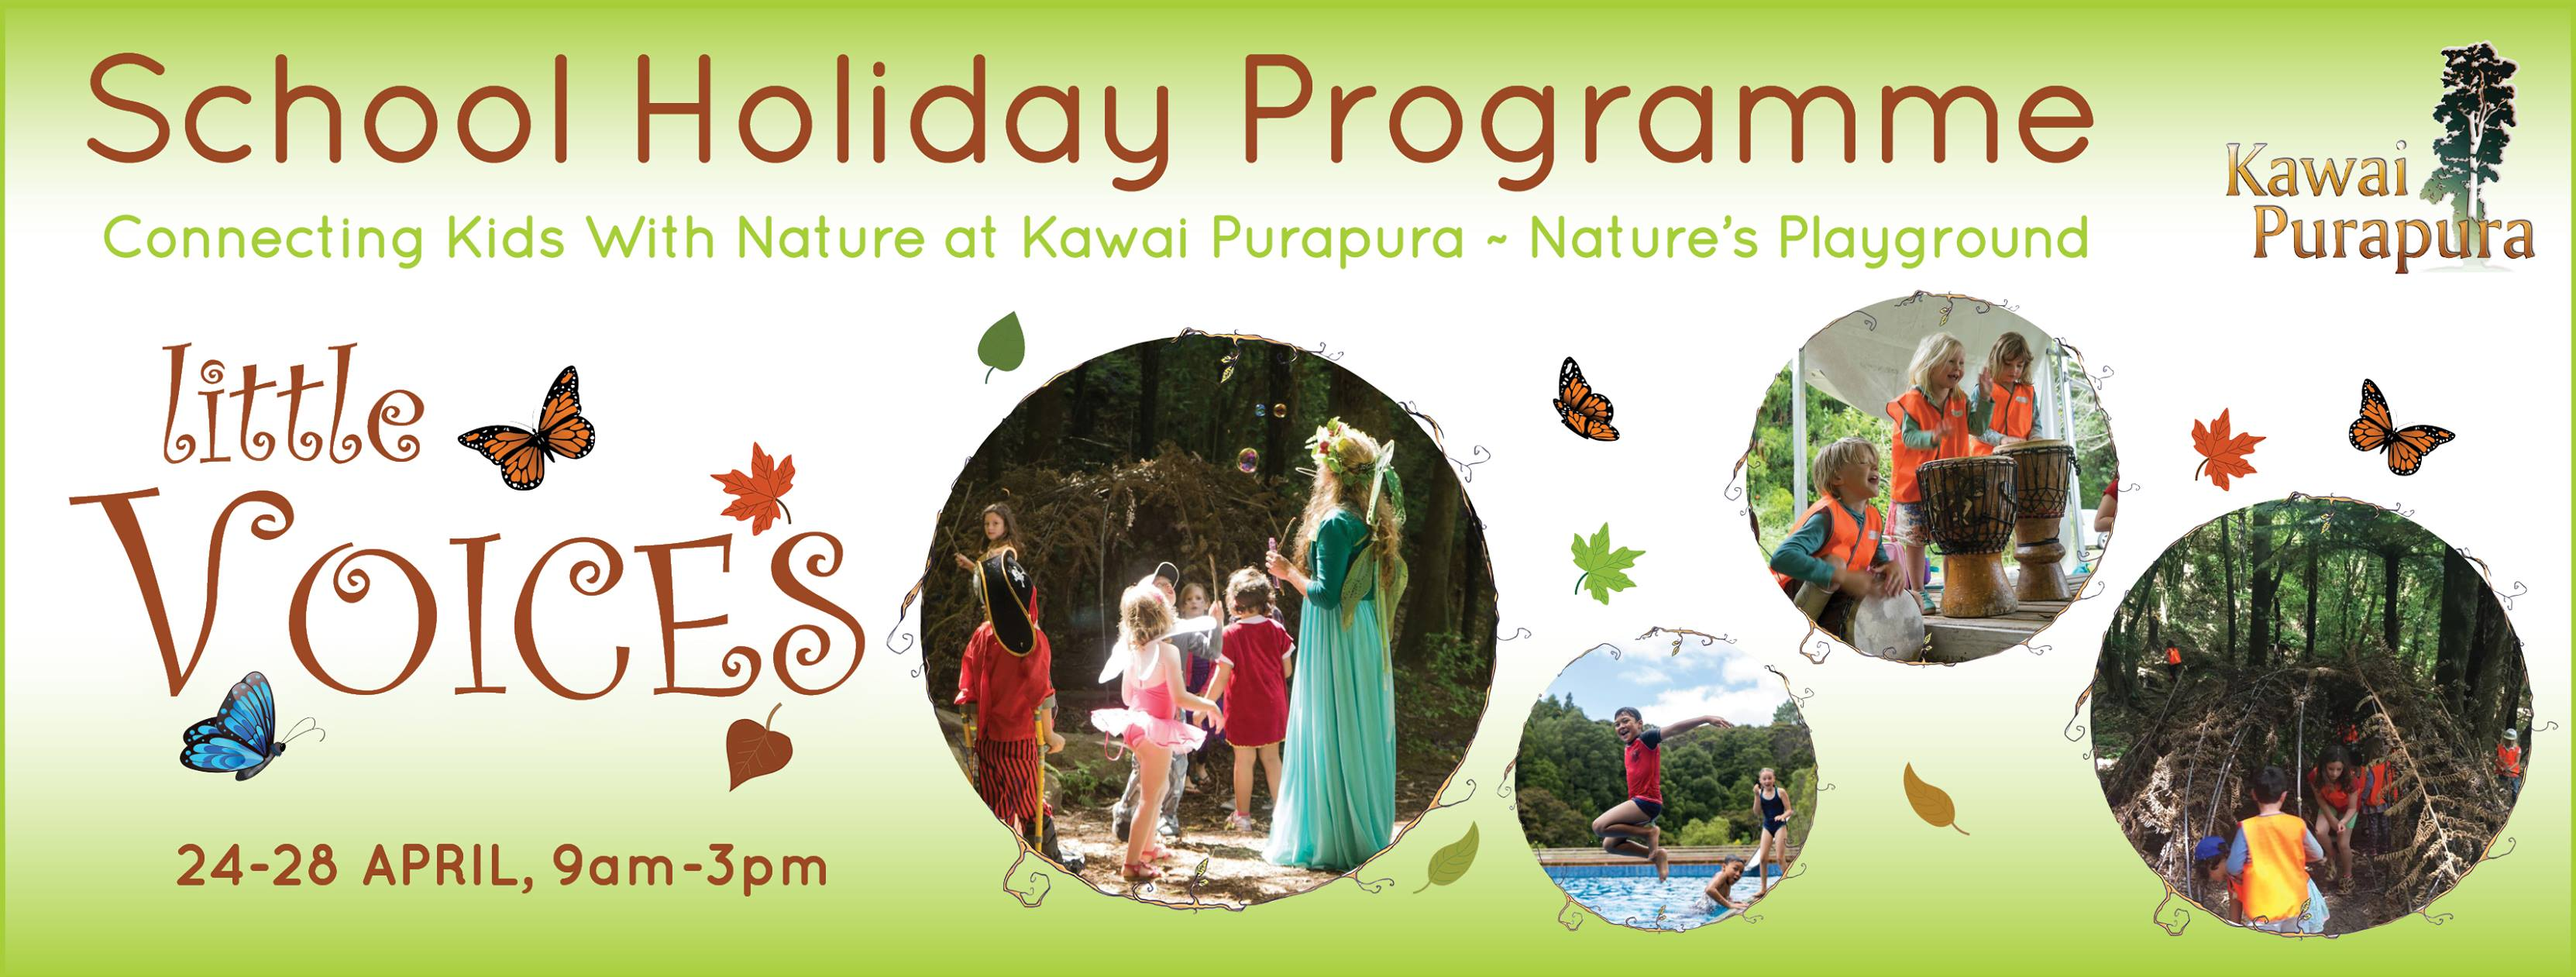 kawaipurapura-little-voices-school-holiday-programme-april-2017